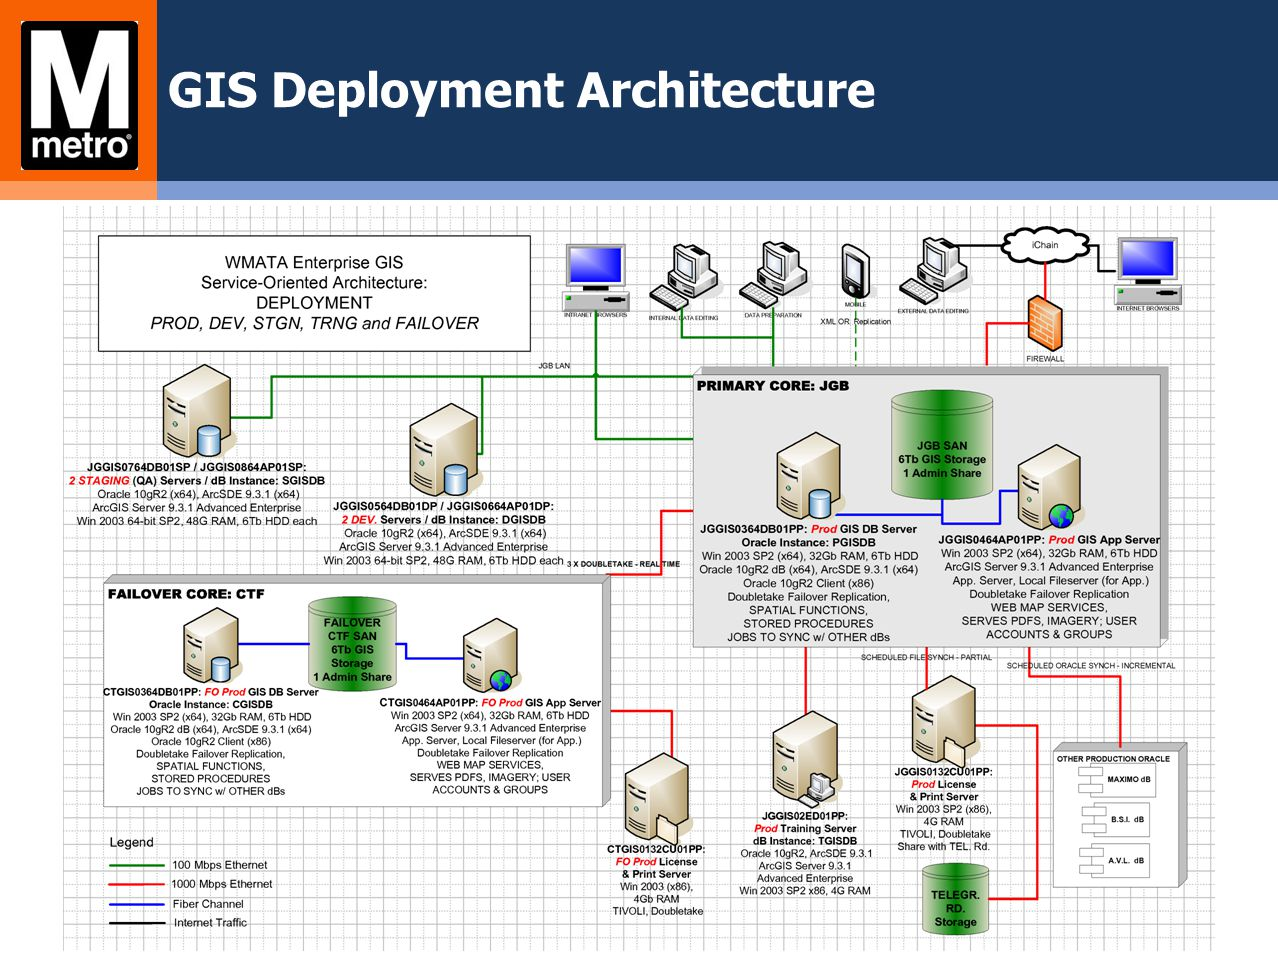 GIS Deployment Architecture